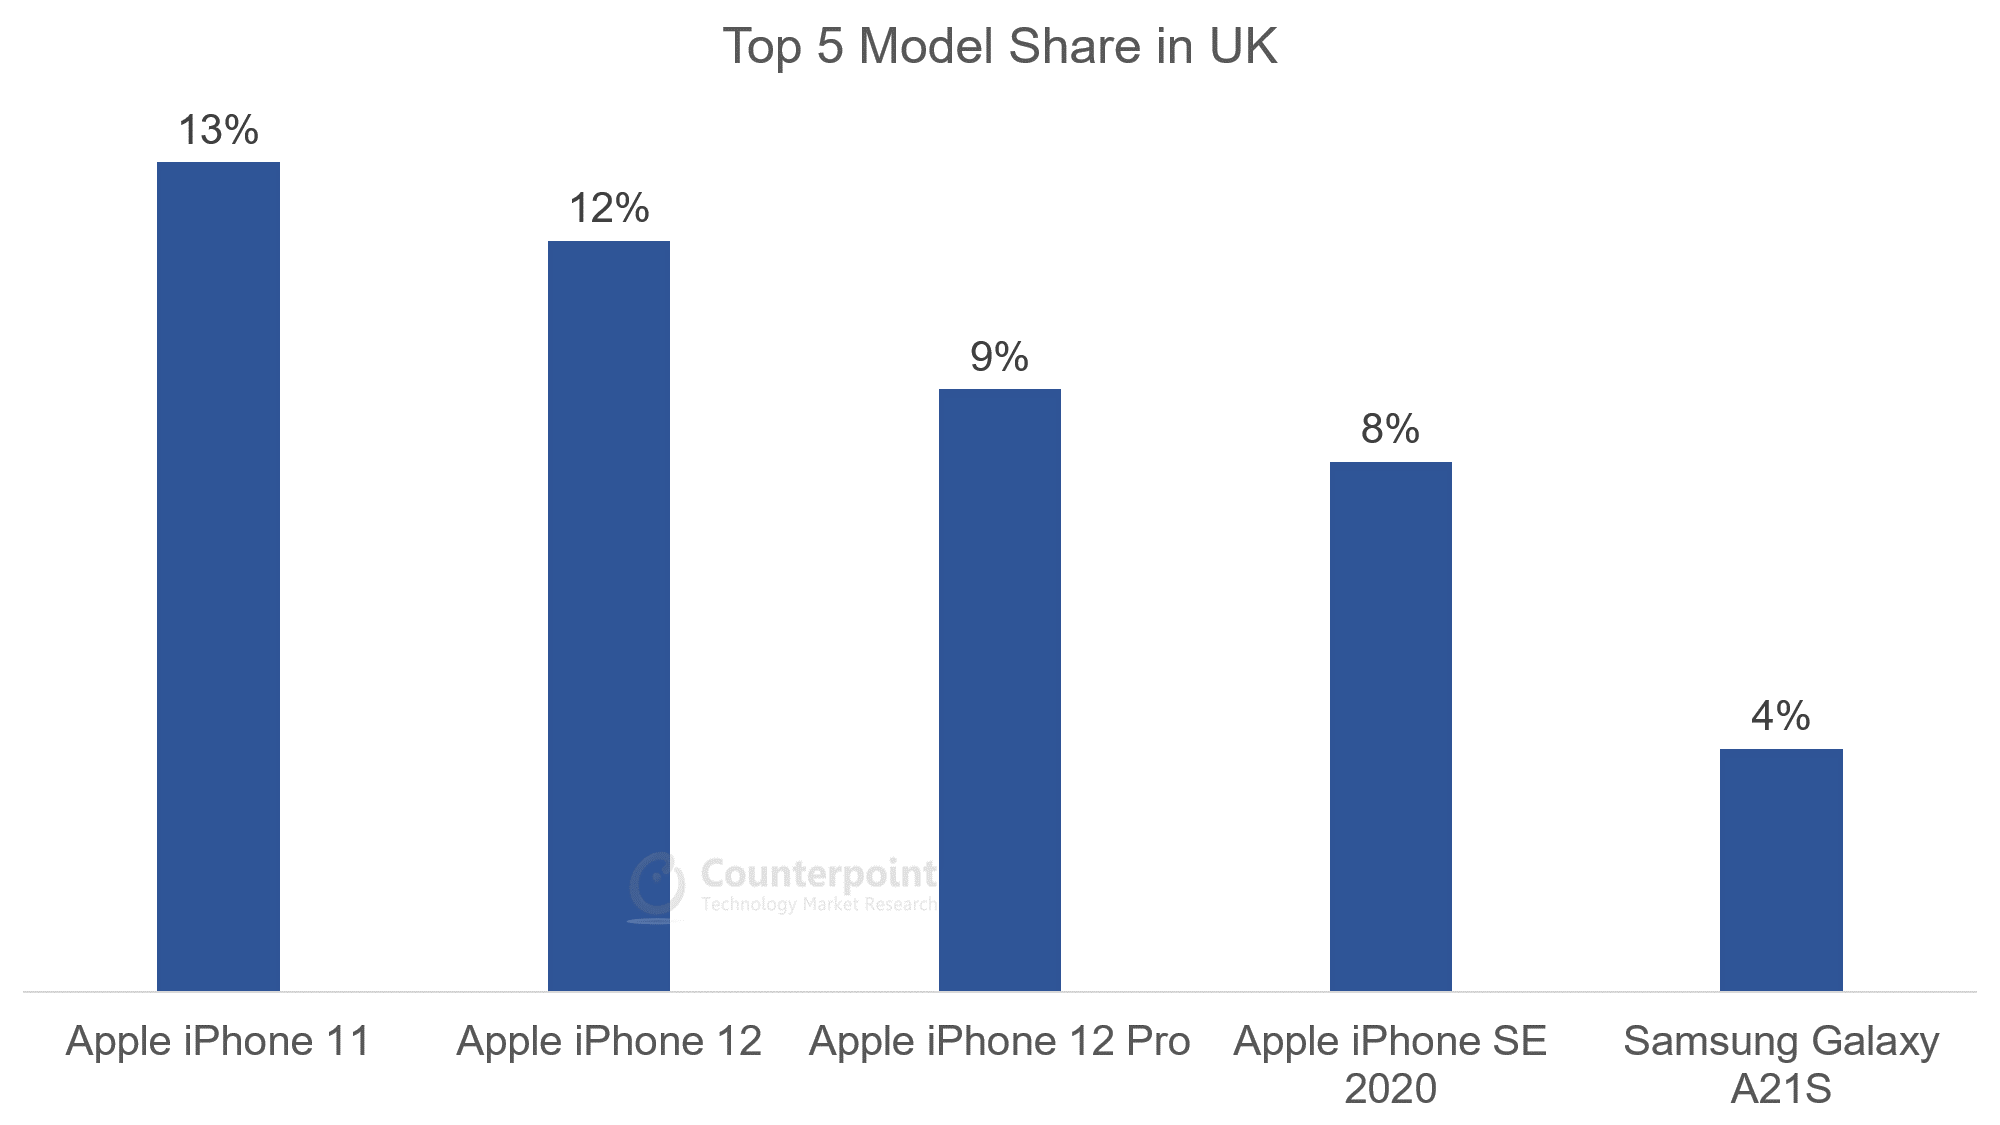 Top 5 Model Share in UK - Oct 2020